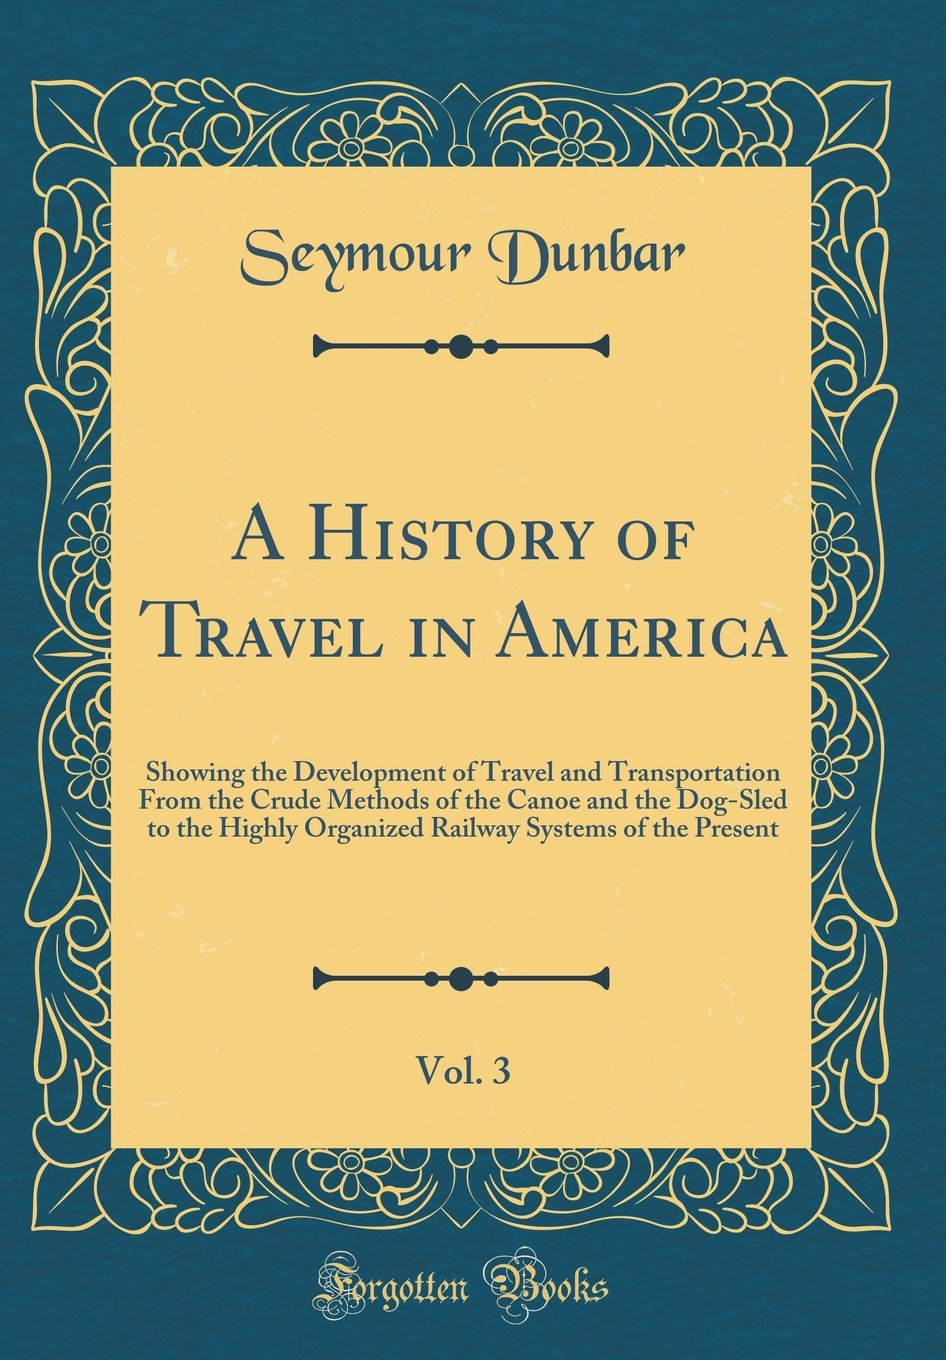 Read Online A History of Travel in America, Vol. 3: Showing the Development of Travel and Transportation from the Crude Methods of the Canoe and the Dog-Sled to ... Systems of the Present (Classic Reprint) ebook